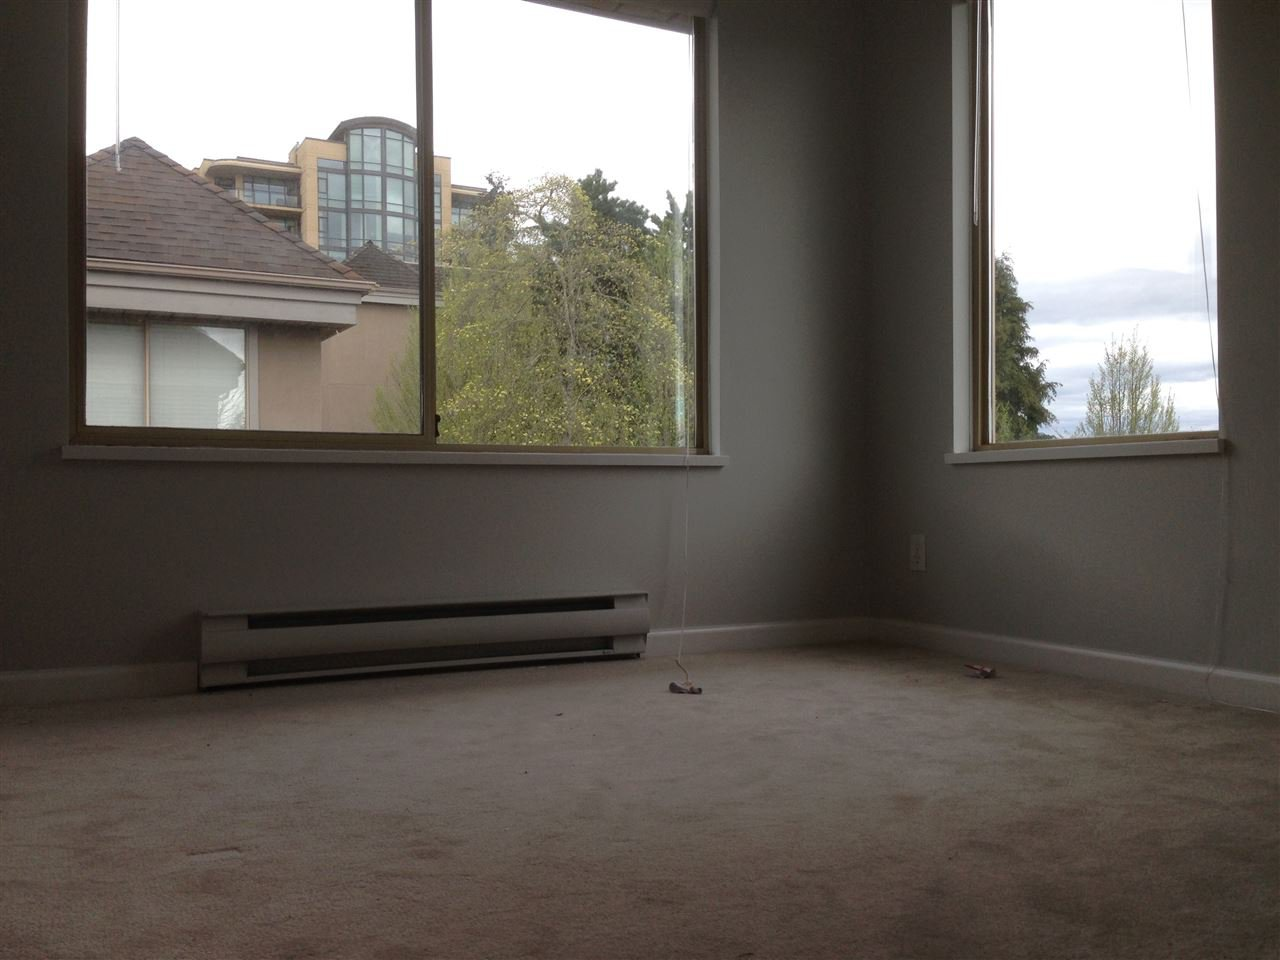 Photo 11: Photos: 15431 RUSSELL Avenue: White Rock Townhouse for sale (South Surrey White Rock)  : MLS®# R2154602